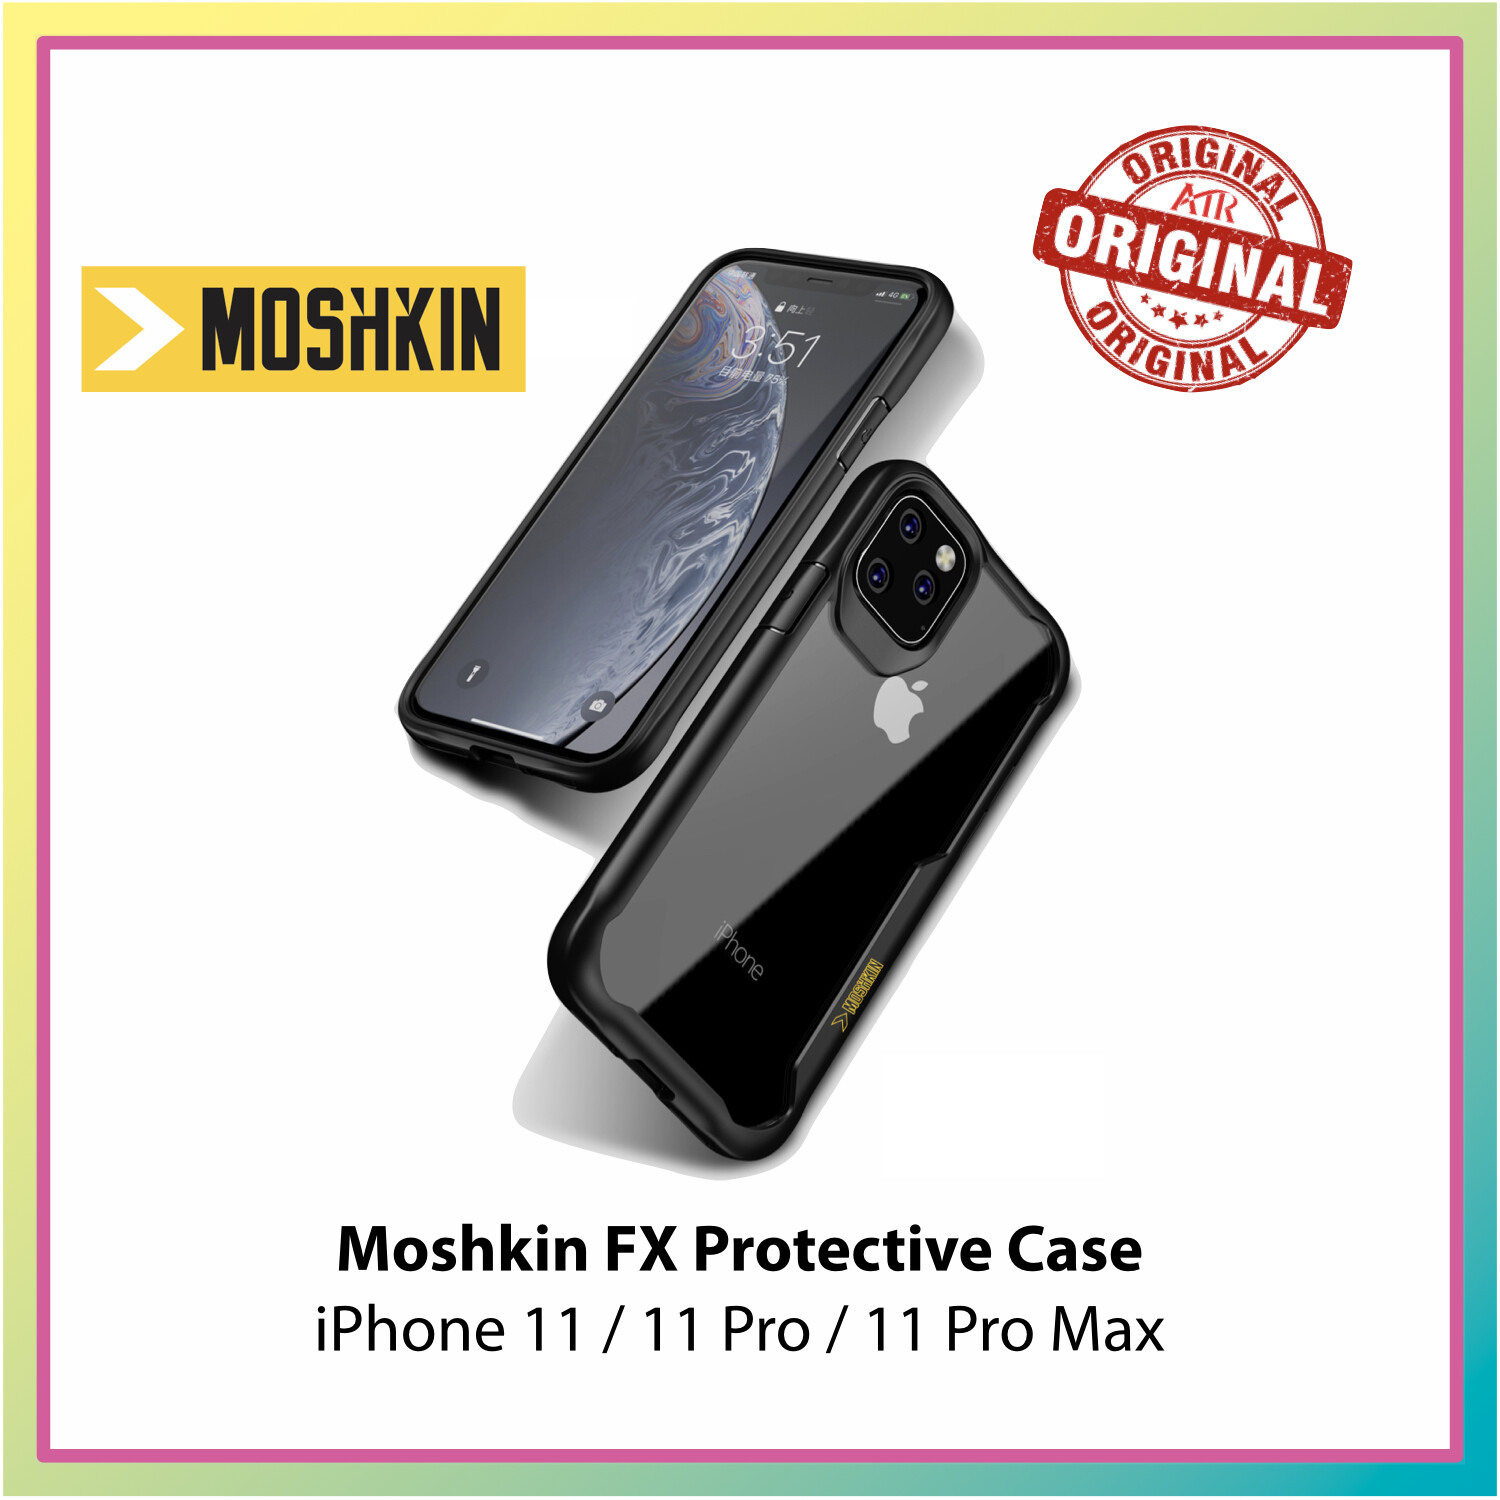 Moshkin FX Protective Case for Apple iPhone 11 / 11 Pro / 11 Pro Max - Black / Clear